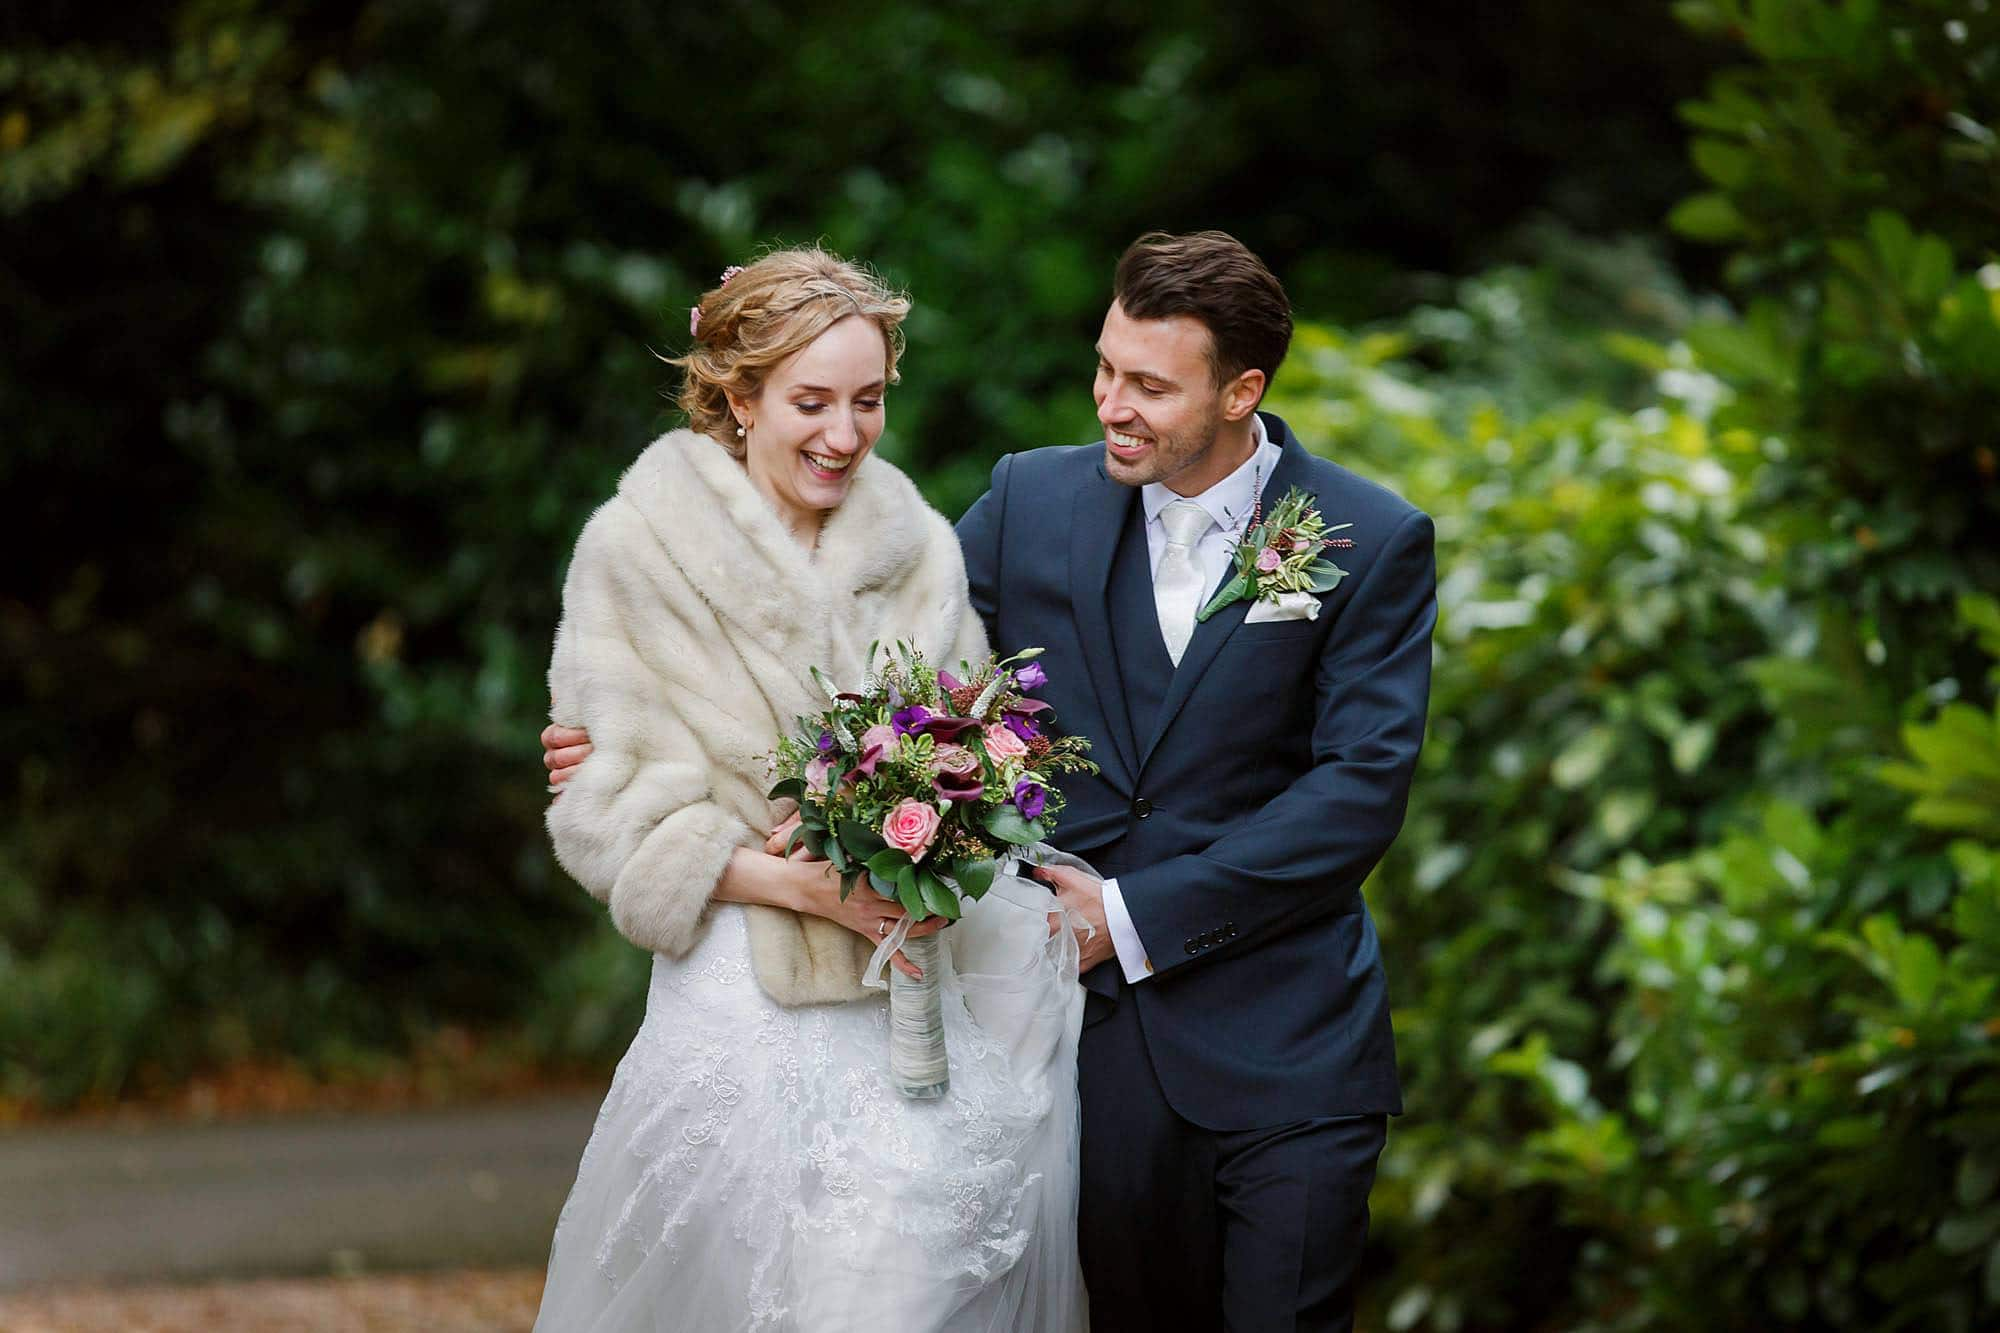 Prestwold Hall wedding photographer of Louise & James